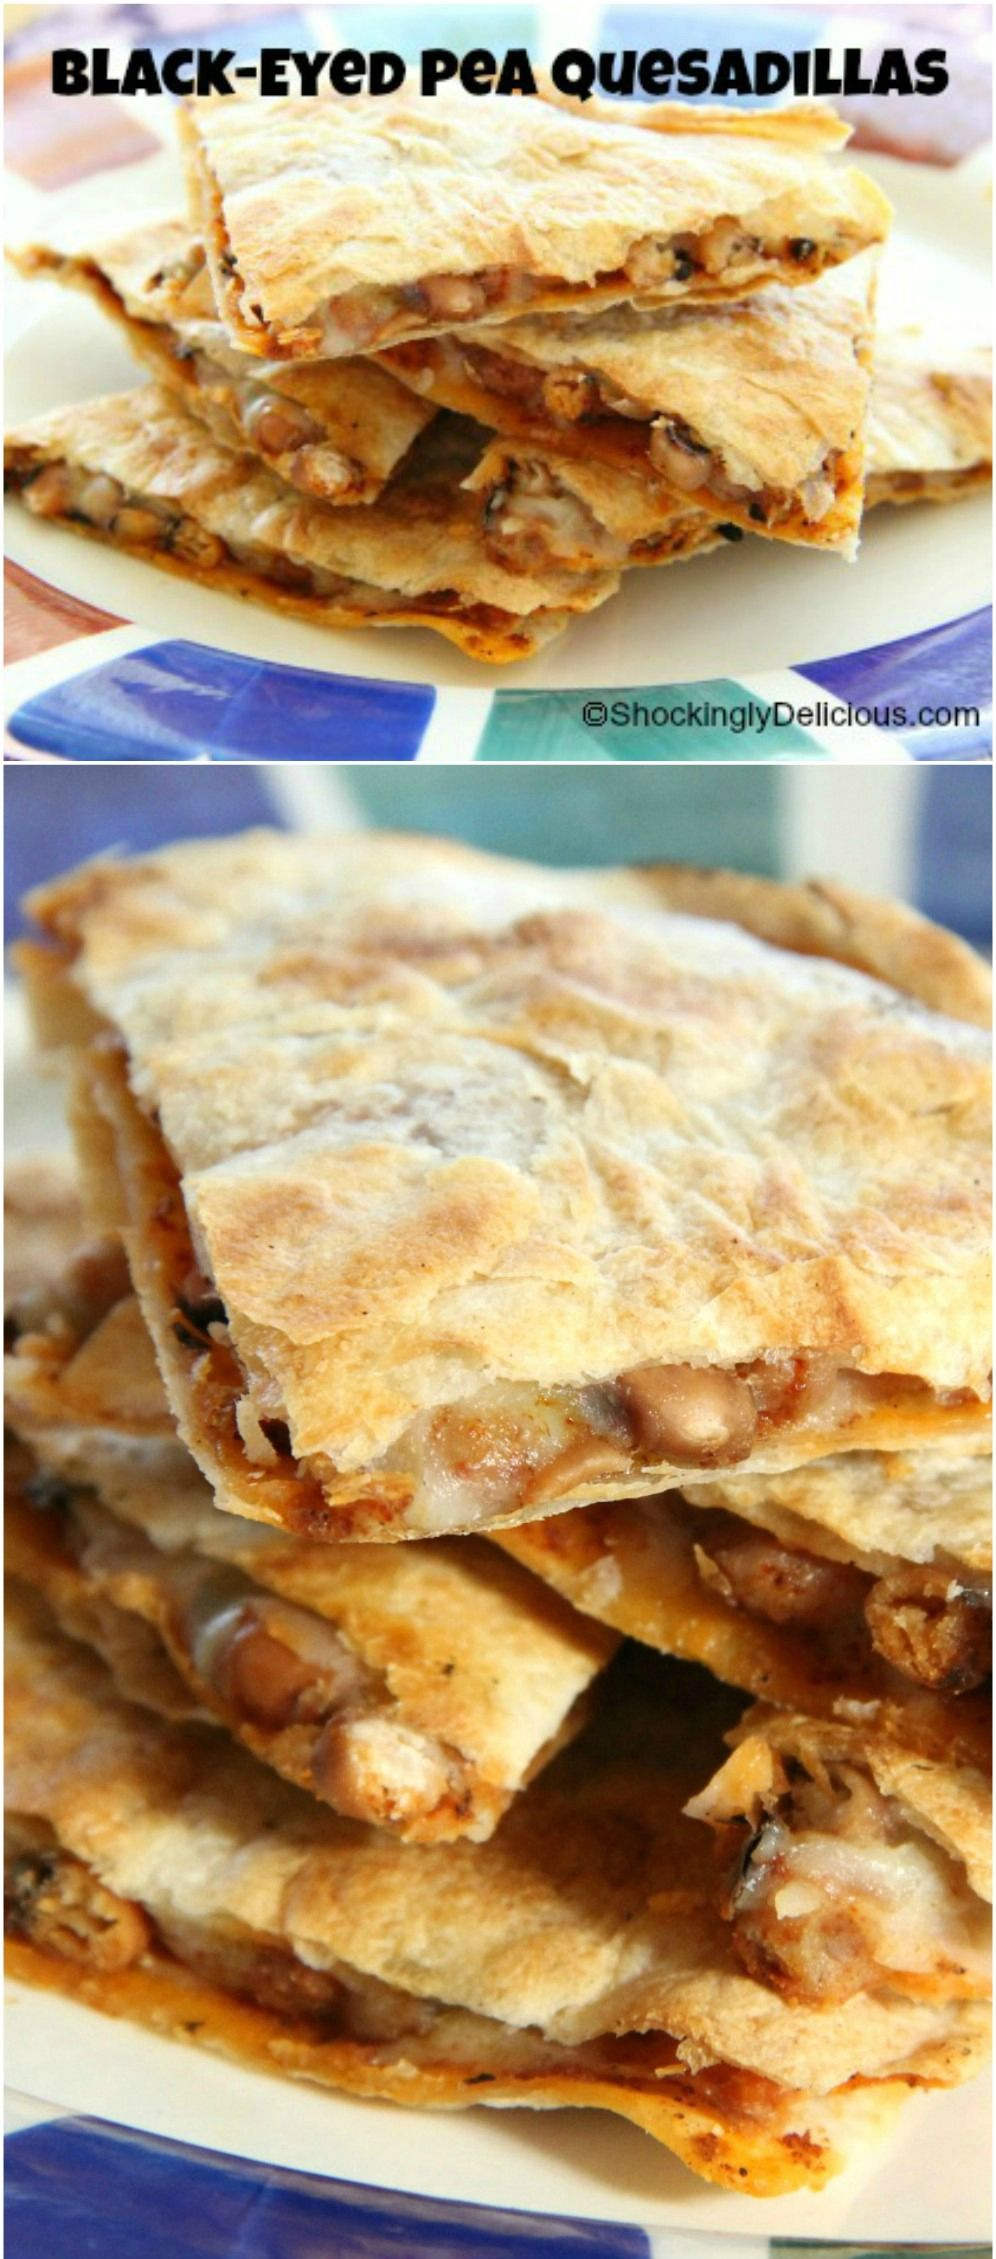 Black-Eyed Pea Quesadillas for New Year's Day Good Luck | Shockingly Delicious